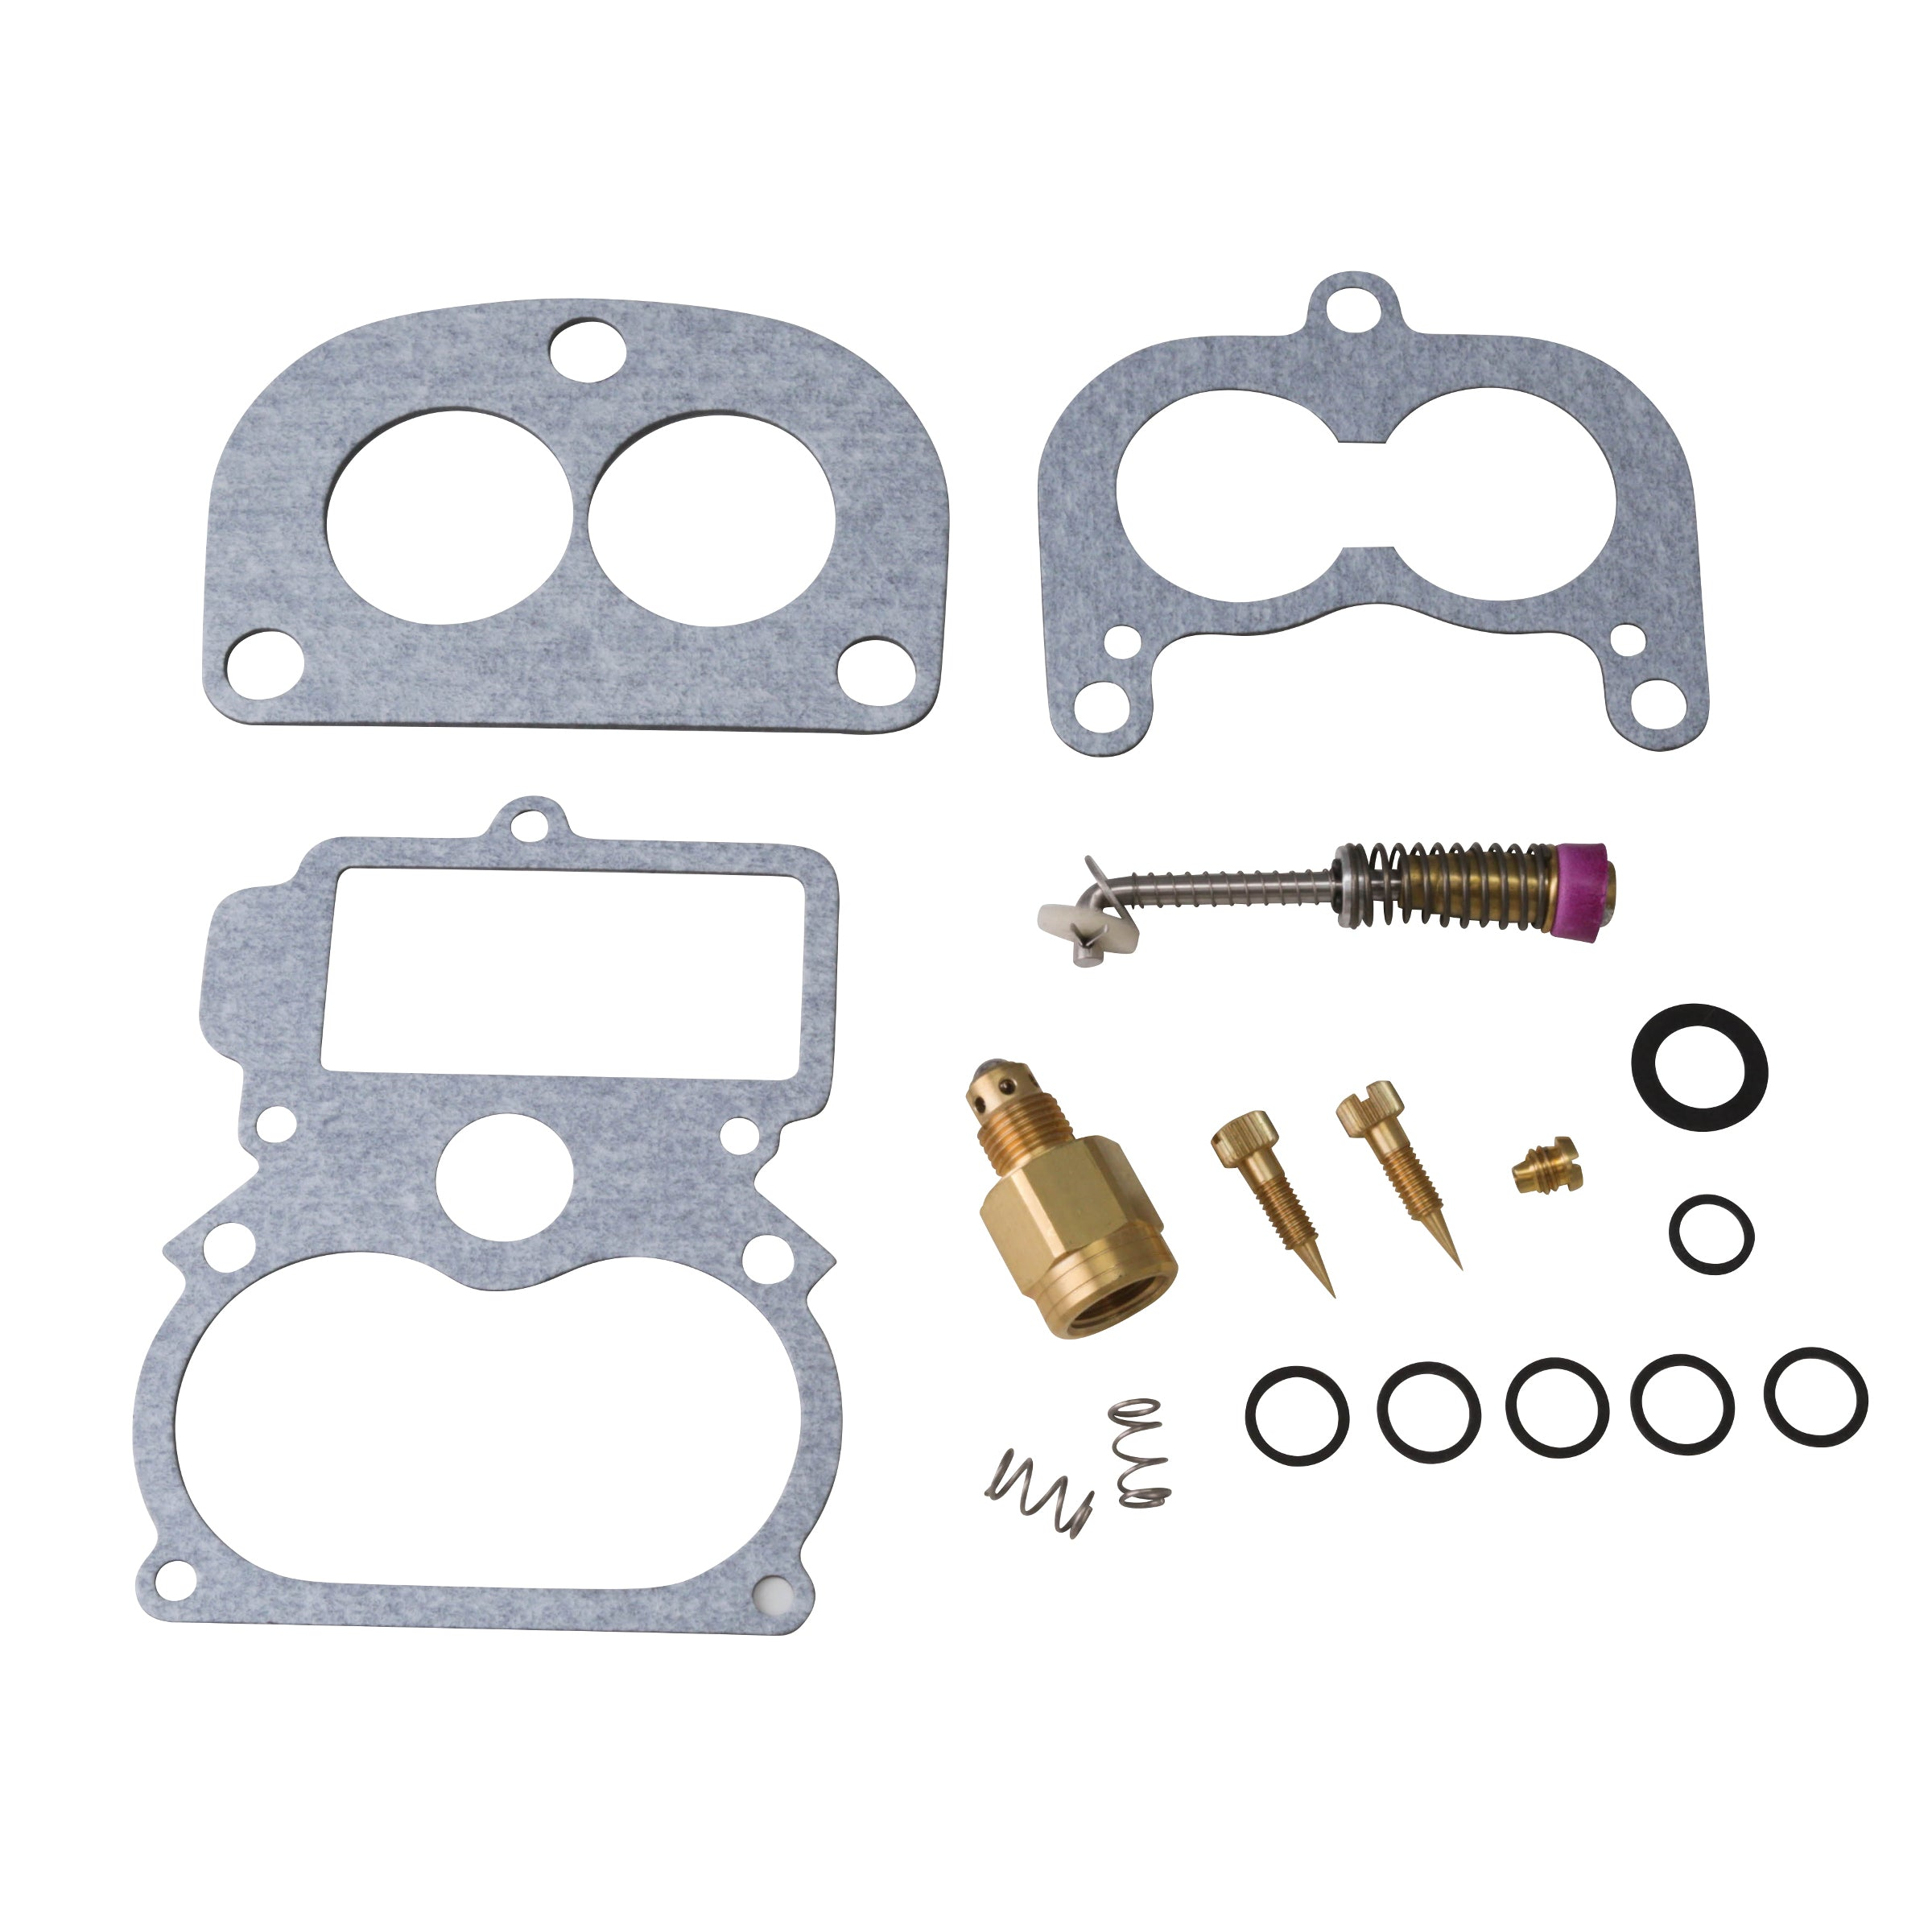 Genuine Stromberg 97 Carburetor Premium Service Kit • 81